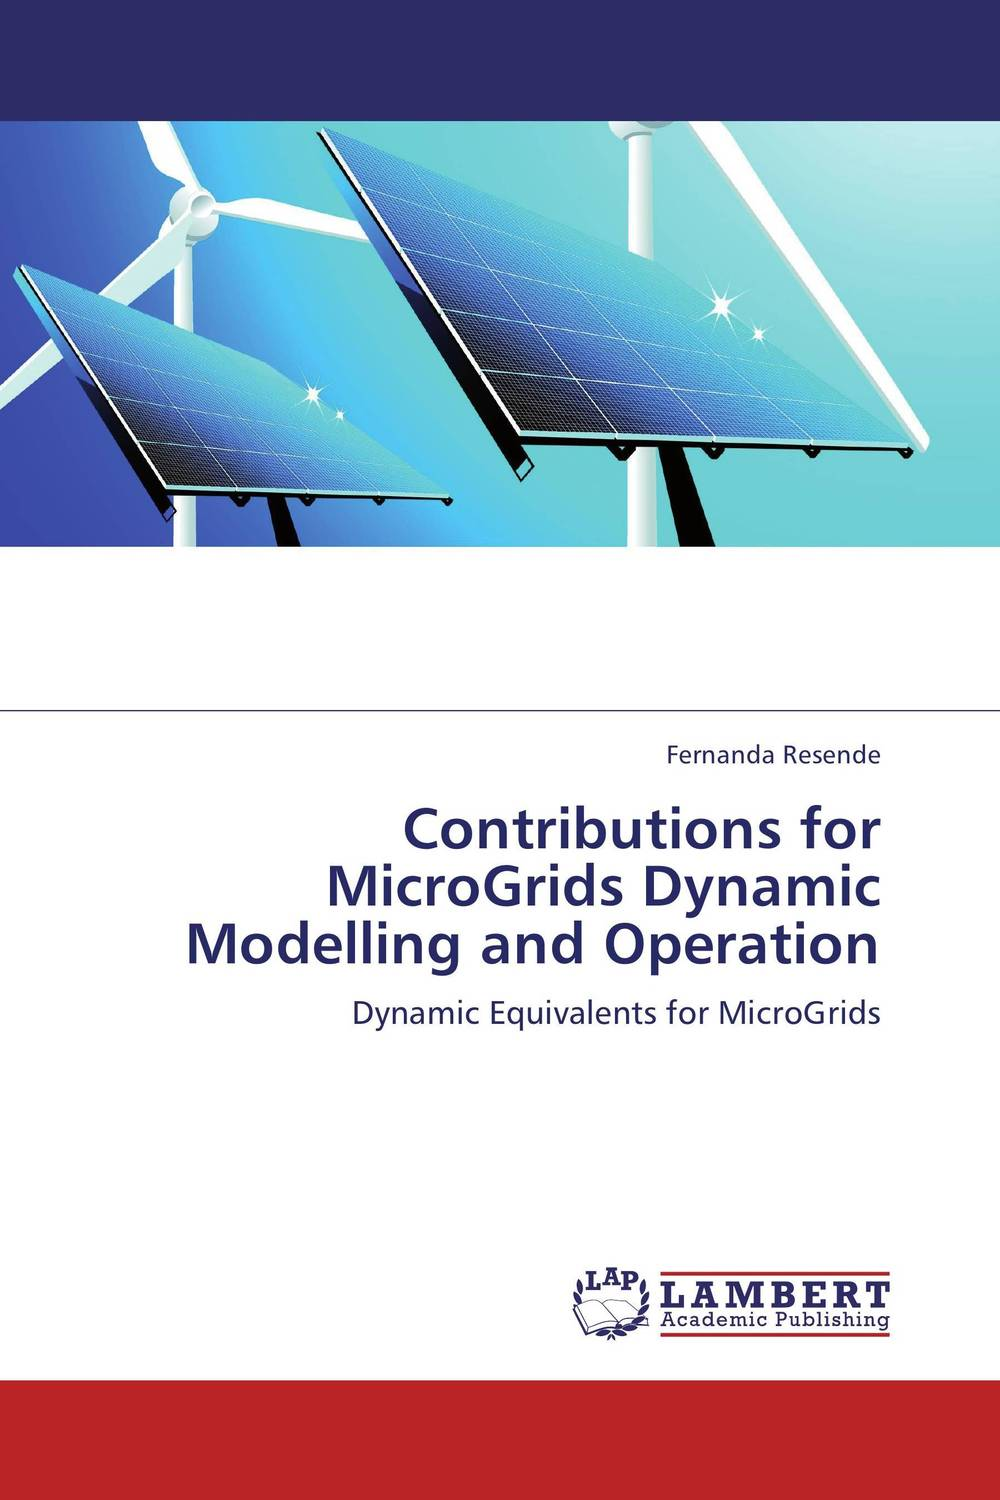 Contributions for MicroGrids Dynamic Modelling and Operation